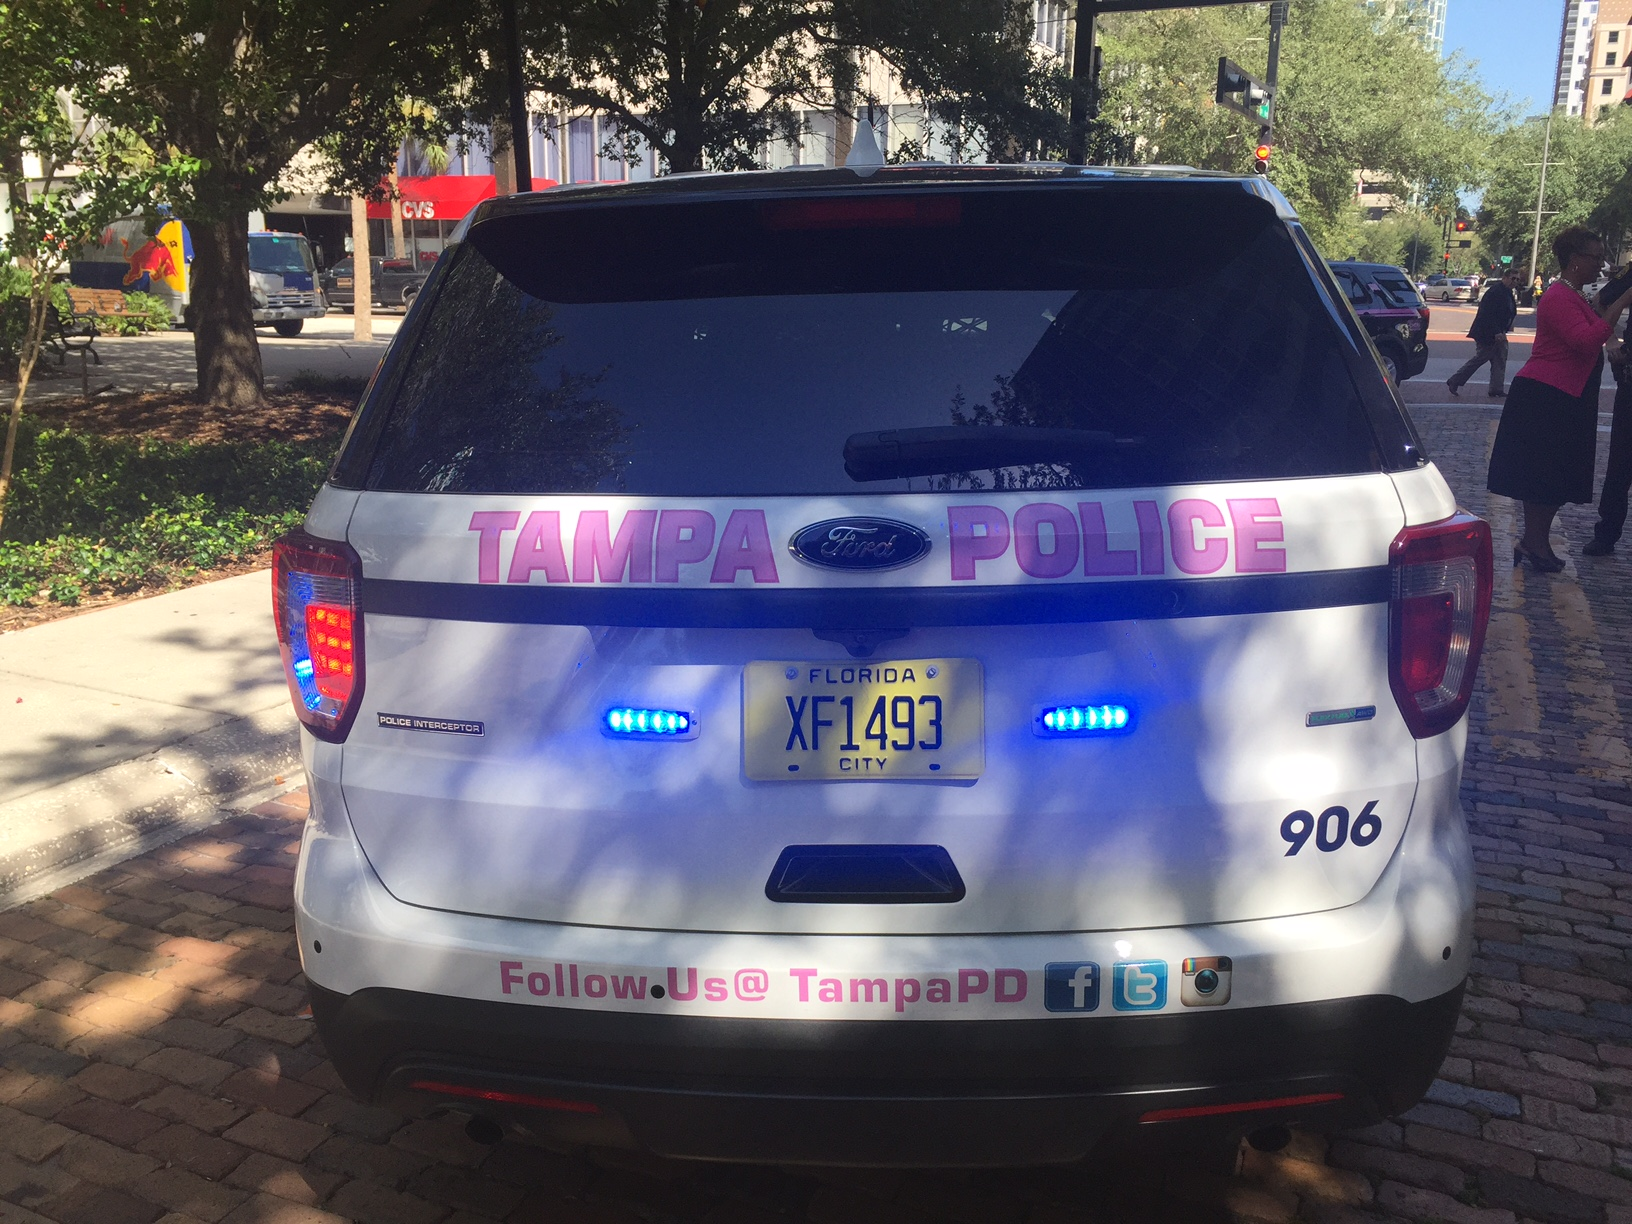 TPDPink: Post selfie with pink Tampa police patrol cars